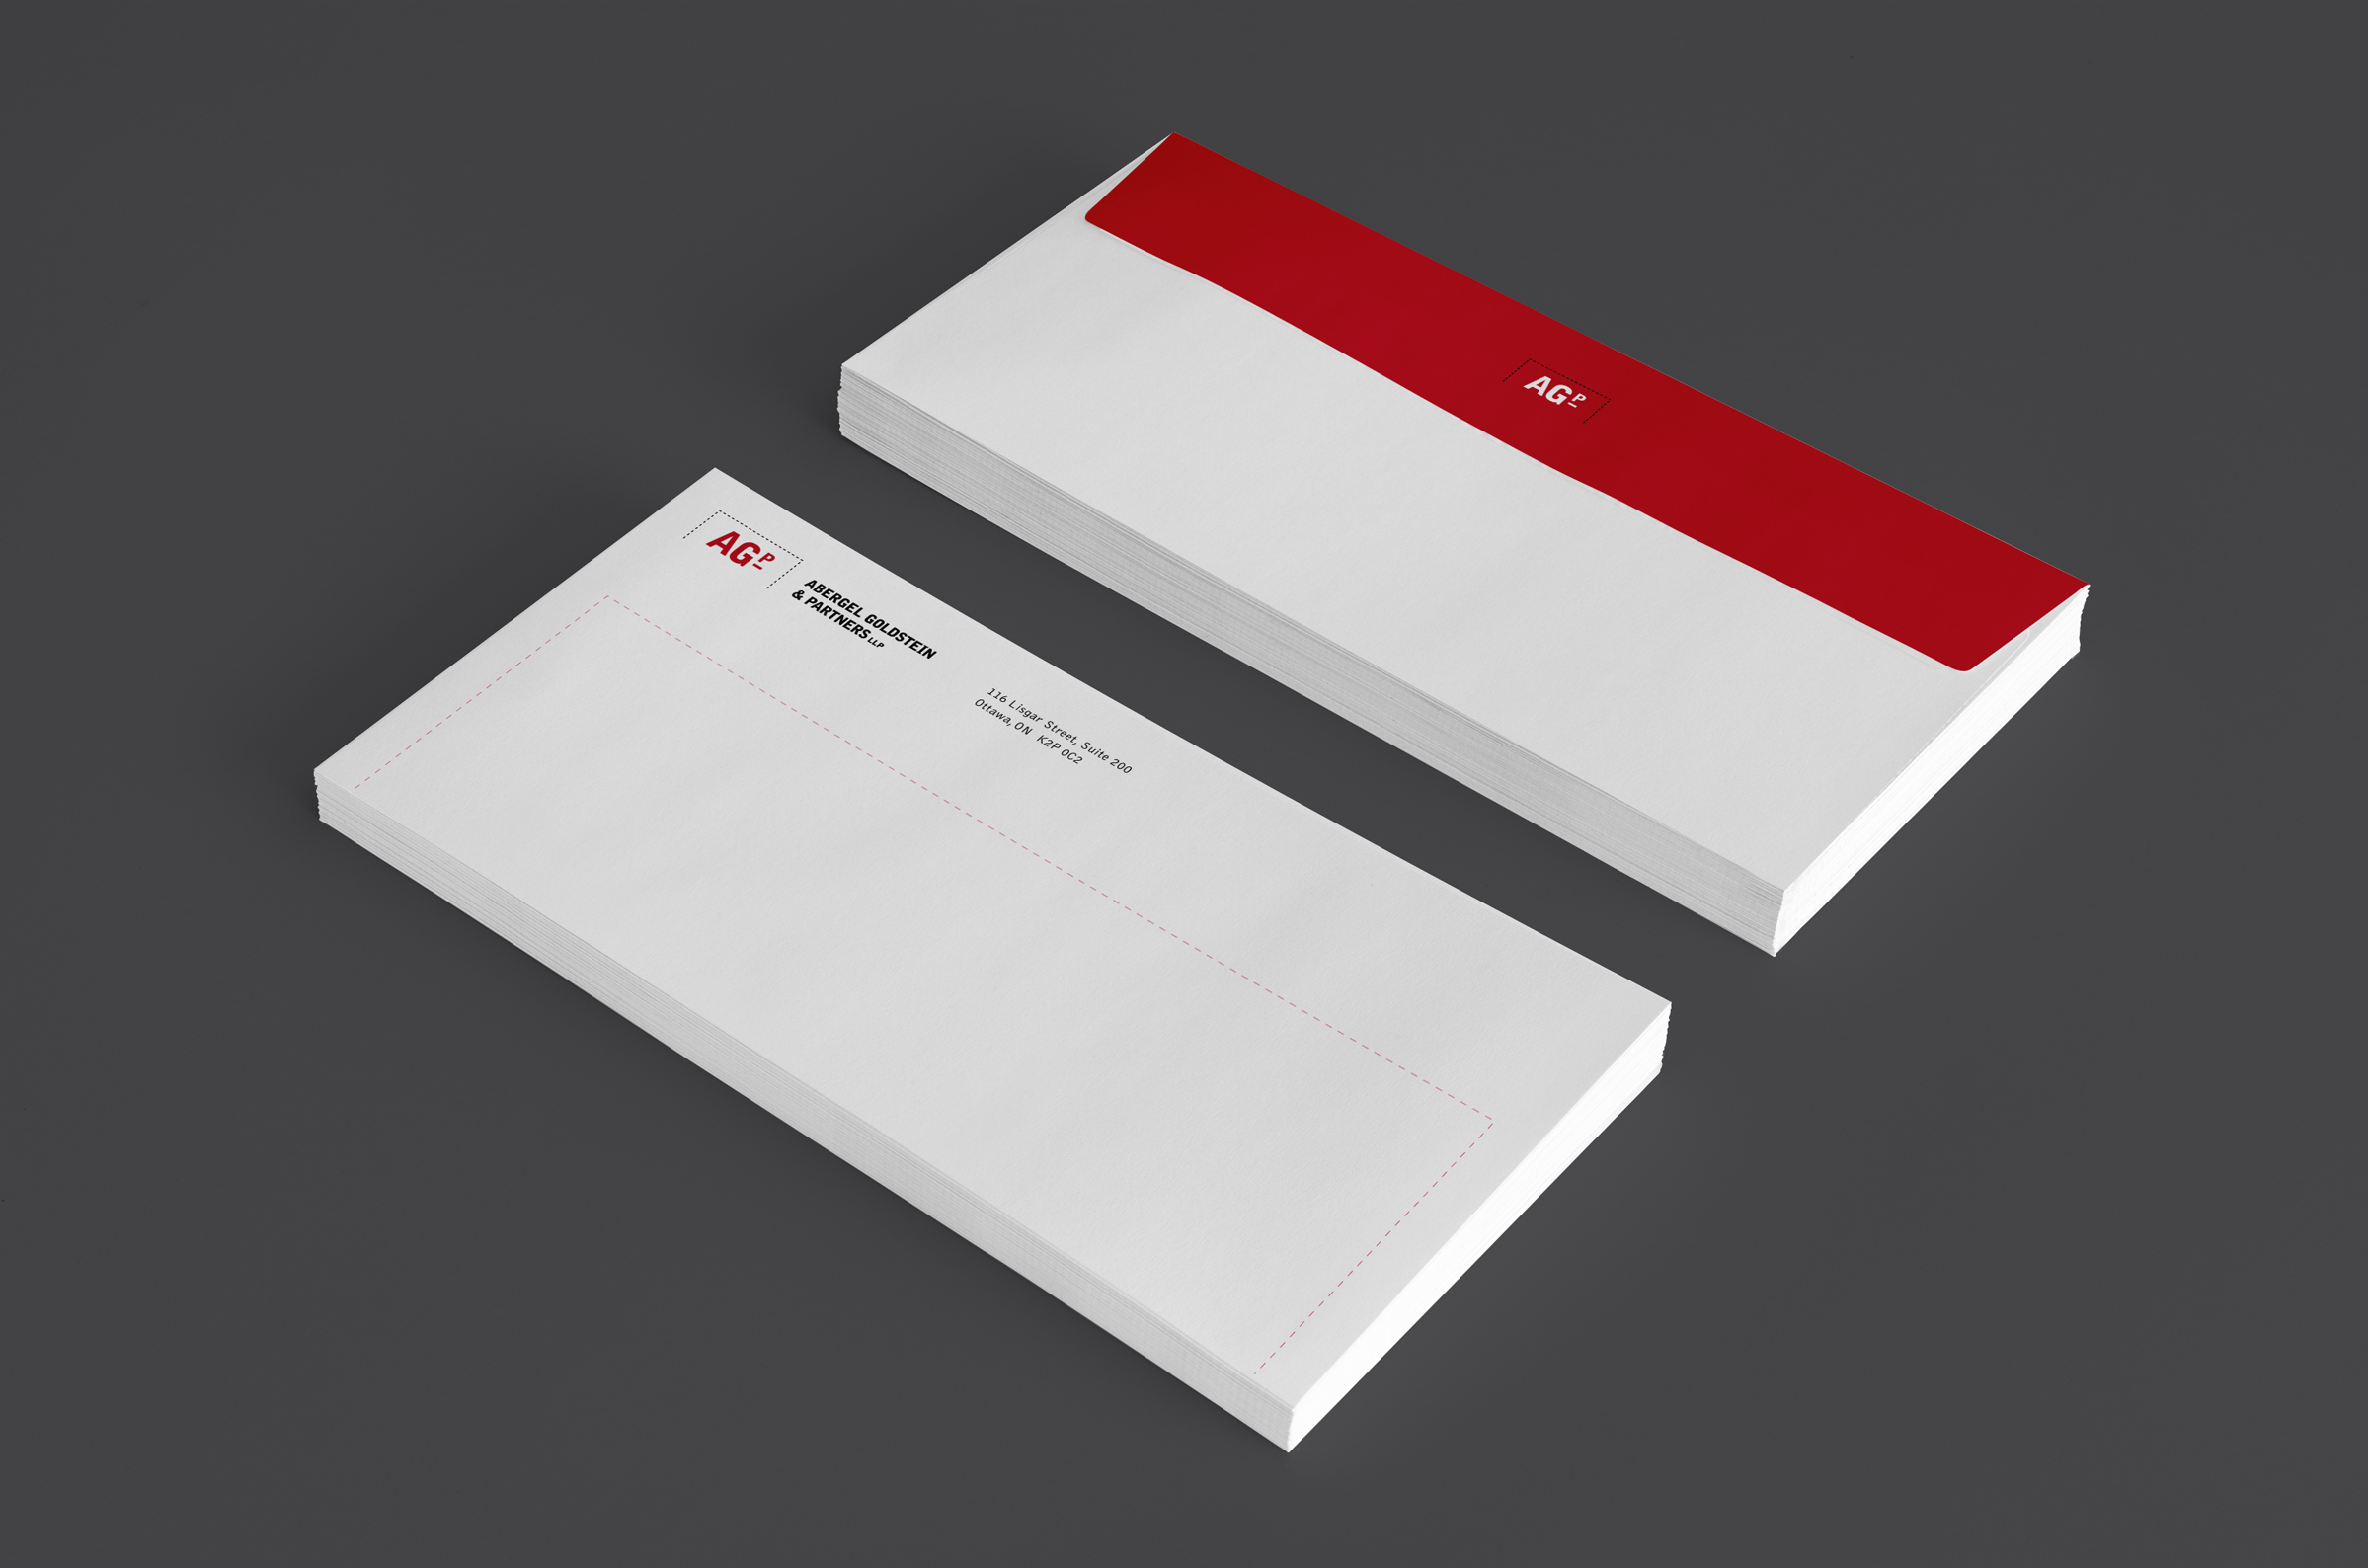 Envelope for Abergel Goldstein & Partners, an Ottawa law firm, by Graphic Designer idApostle